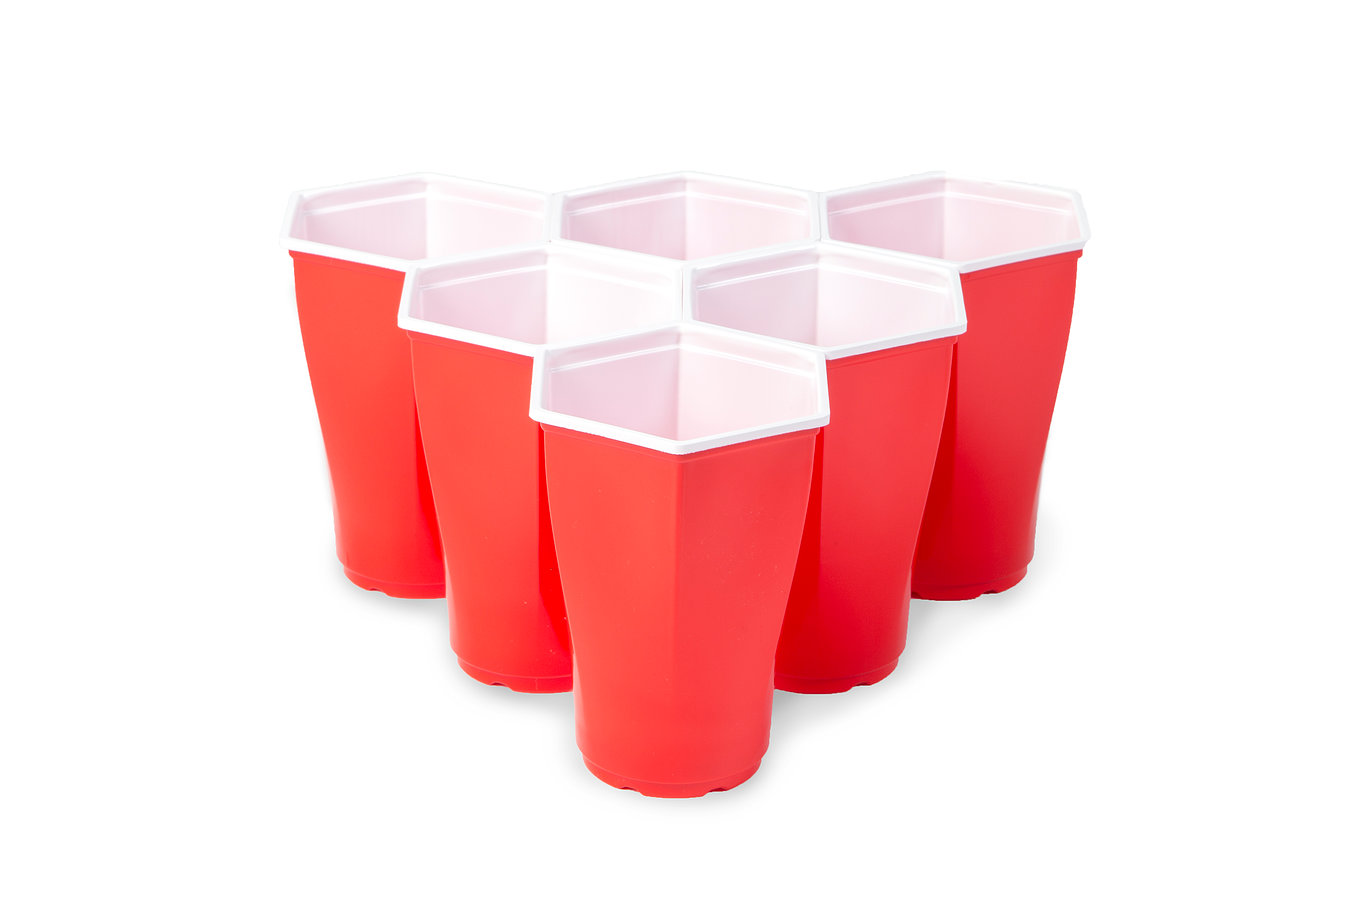 This Red Solo 'Hex Cup' Will Revolutionize The Way You Play Beer.